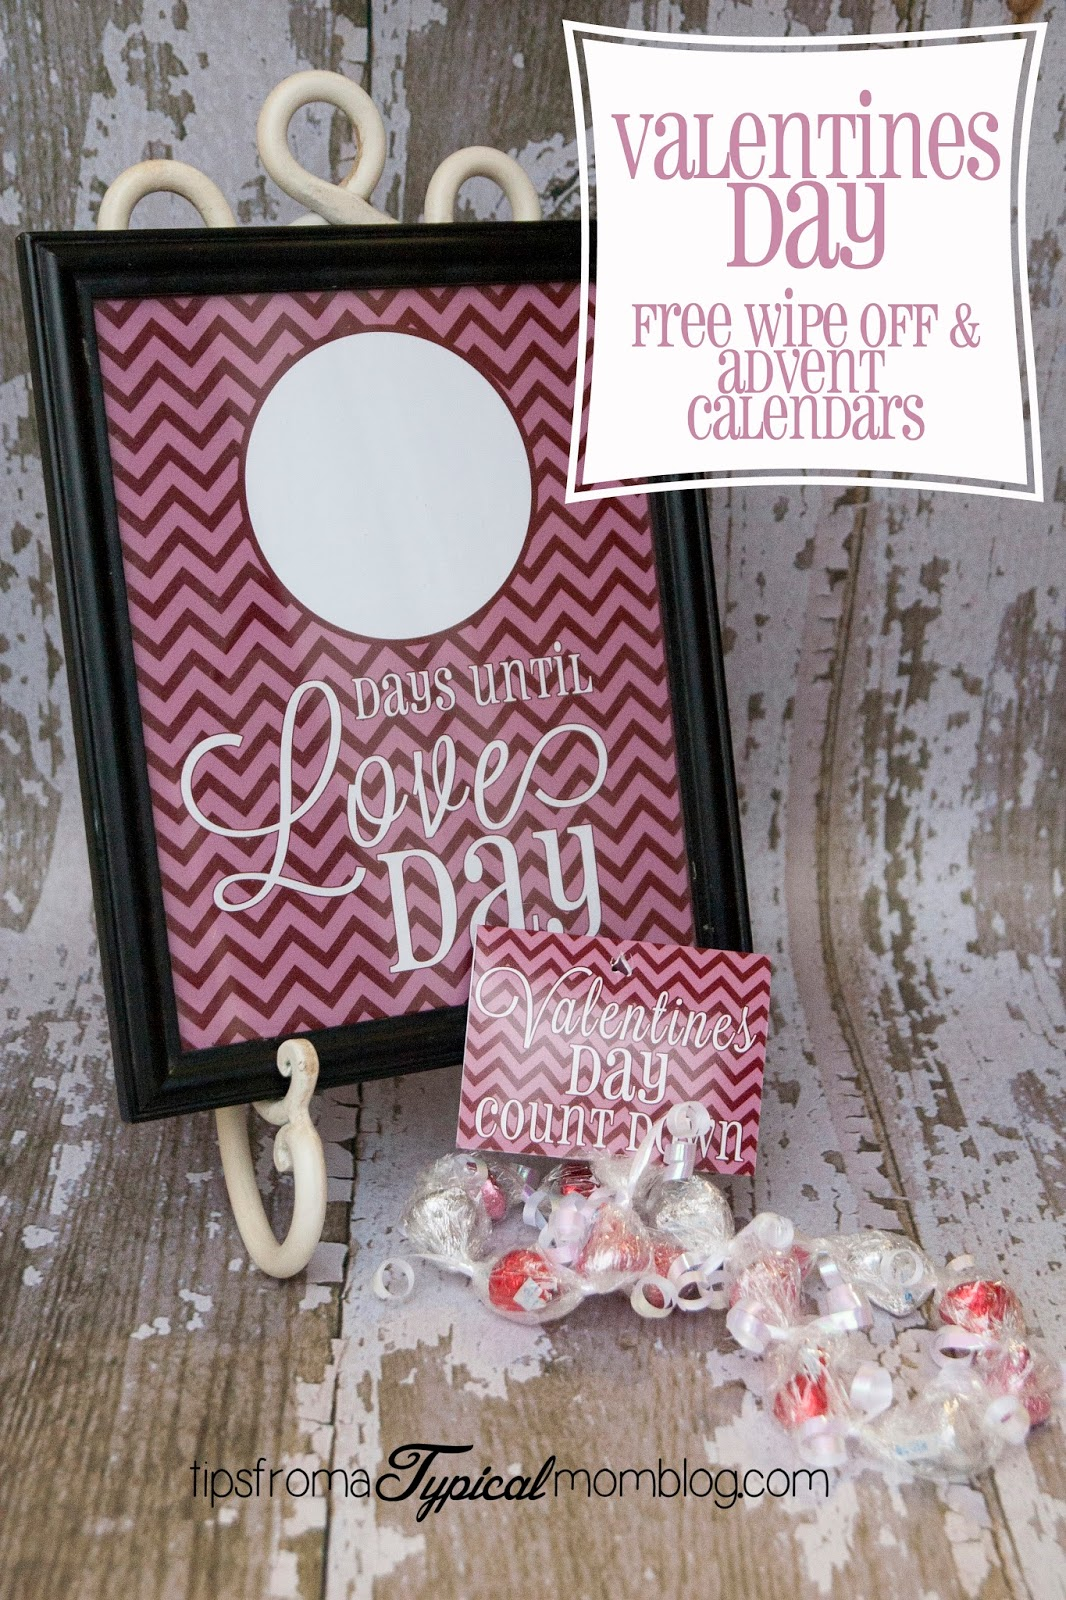 Valentines Day Free Wipe off and advent calendar printables